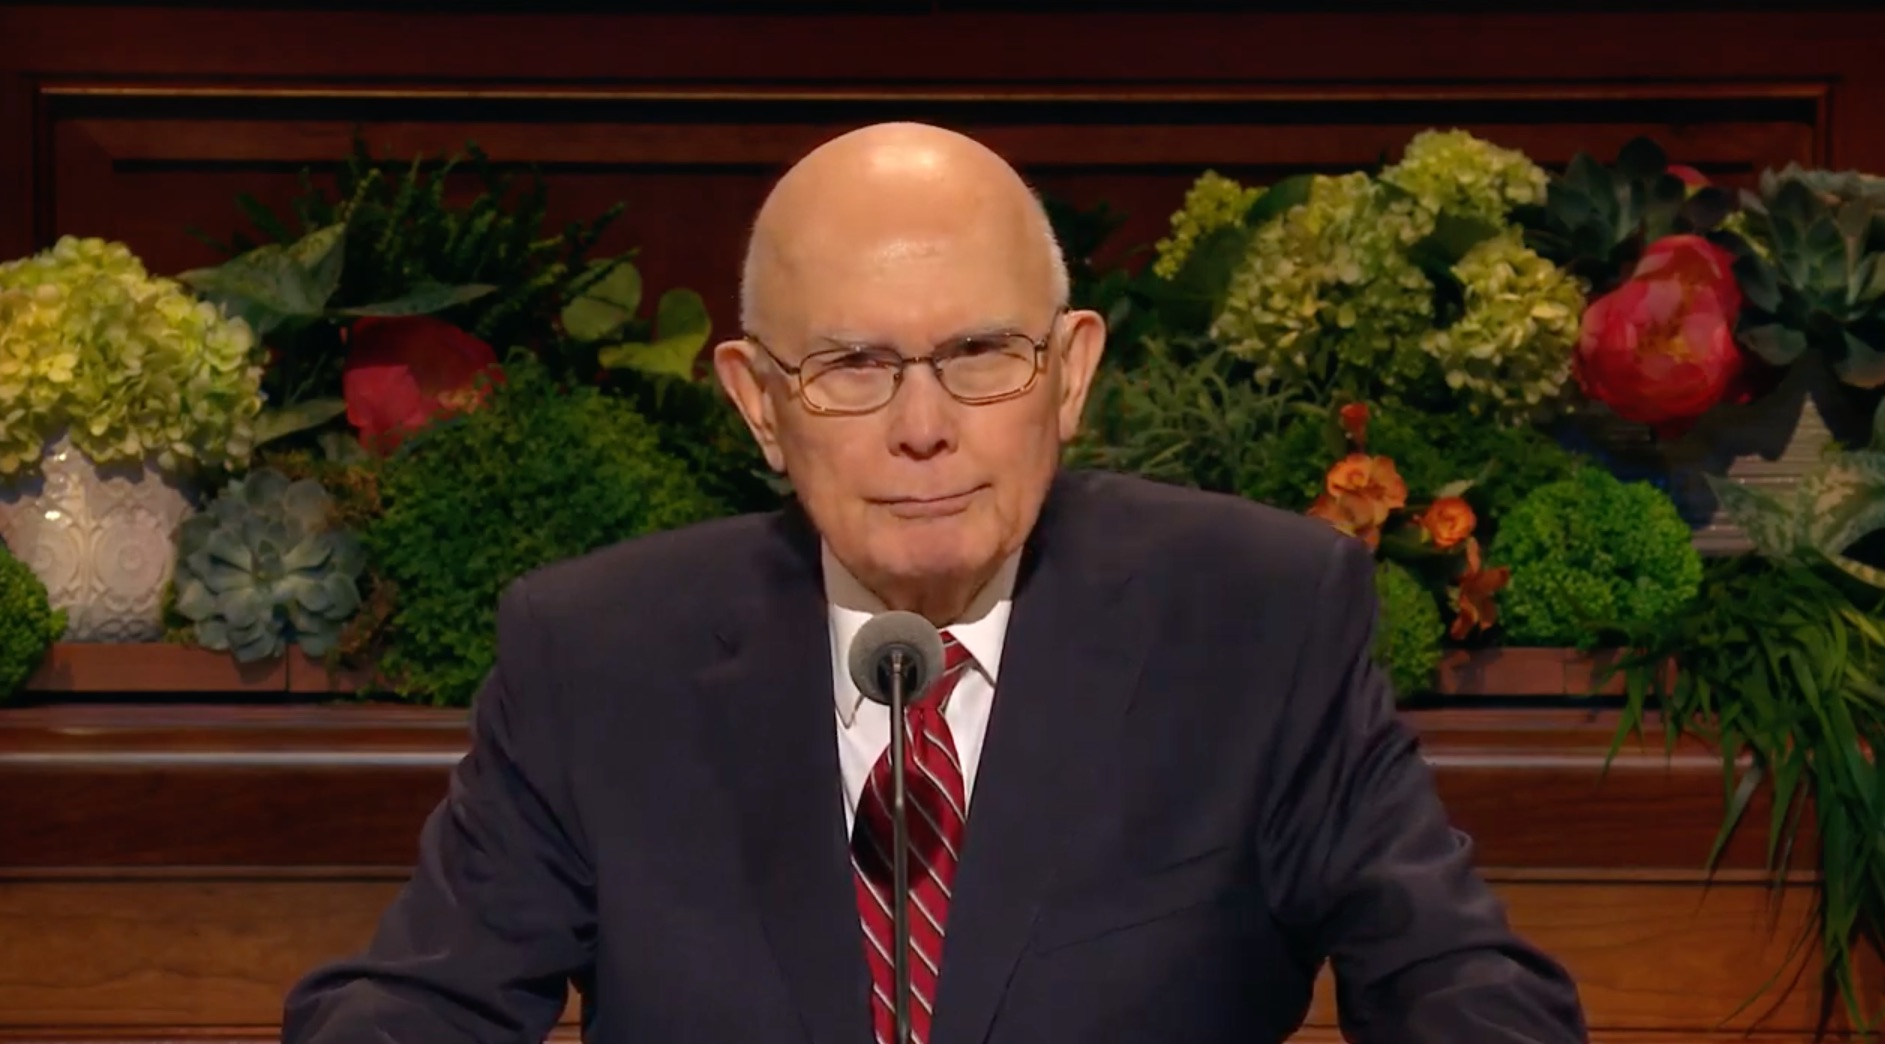 President Dallin H. Oaks, first counselor in the First Presidency, gives his address during the Sunday afternoon session of the 189th Annual General Conference on April 7, 2019.